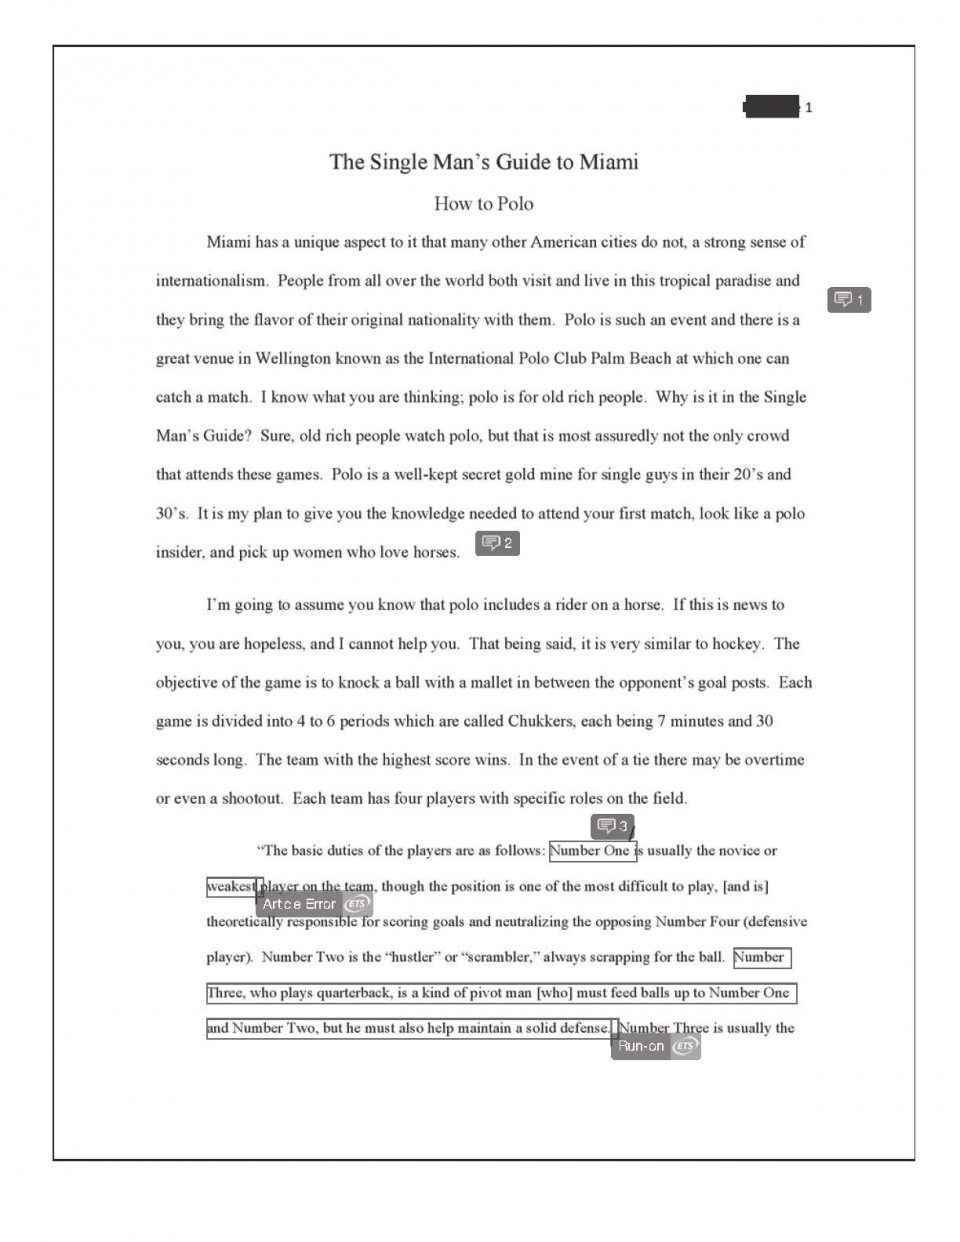 007 Informative Essay Kinds Of Writing Types Essays The Center In Hindi Final How To Polo Redacted P Pdf Task Slideshare Ppt Withs Wikipedia Dreaded Outline Template Topics For 5th Grade Rubric Fsa 960